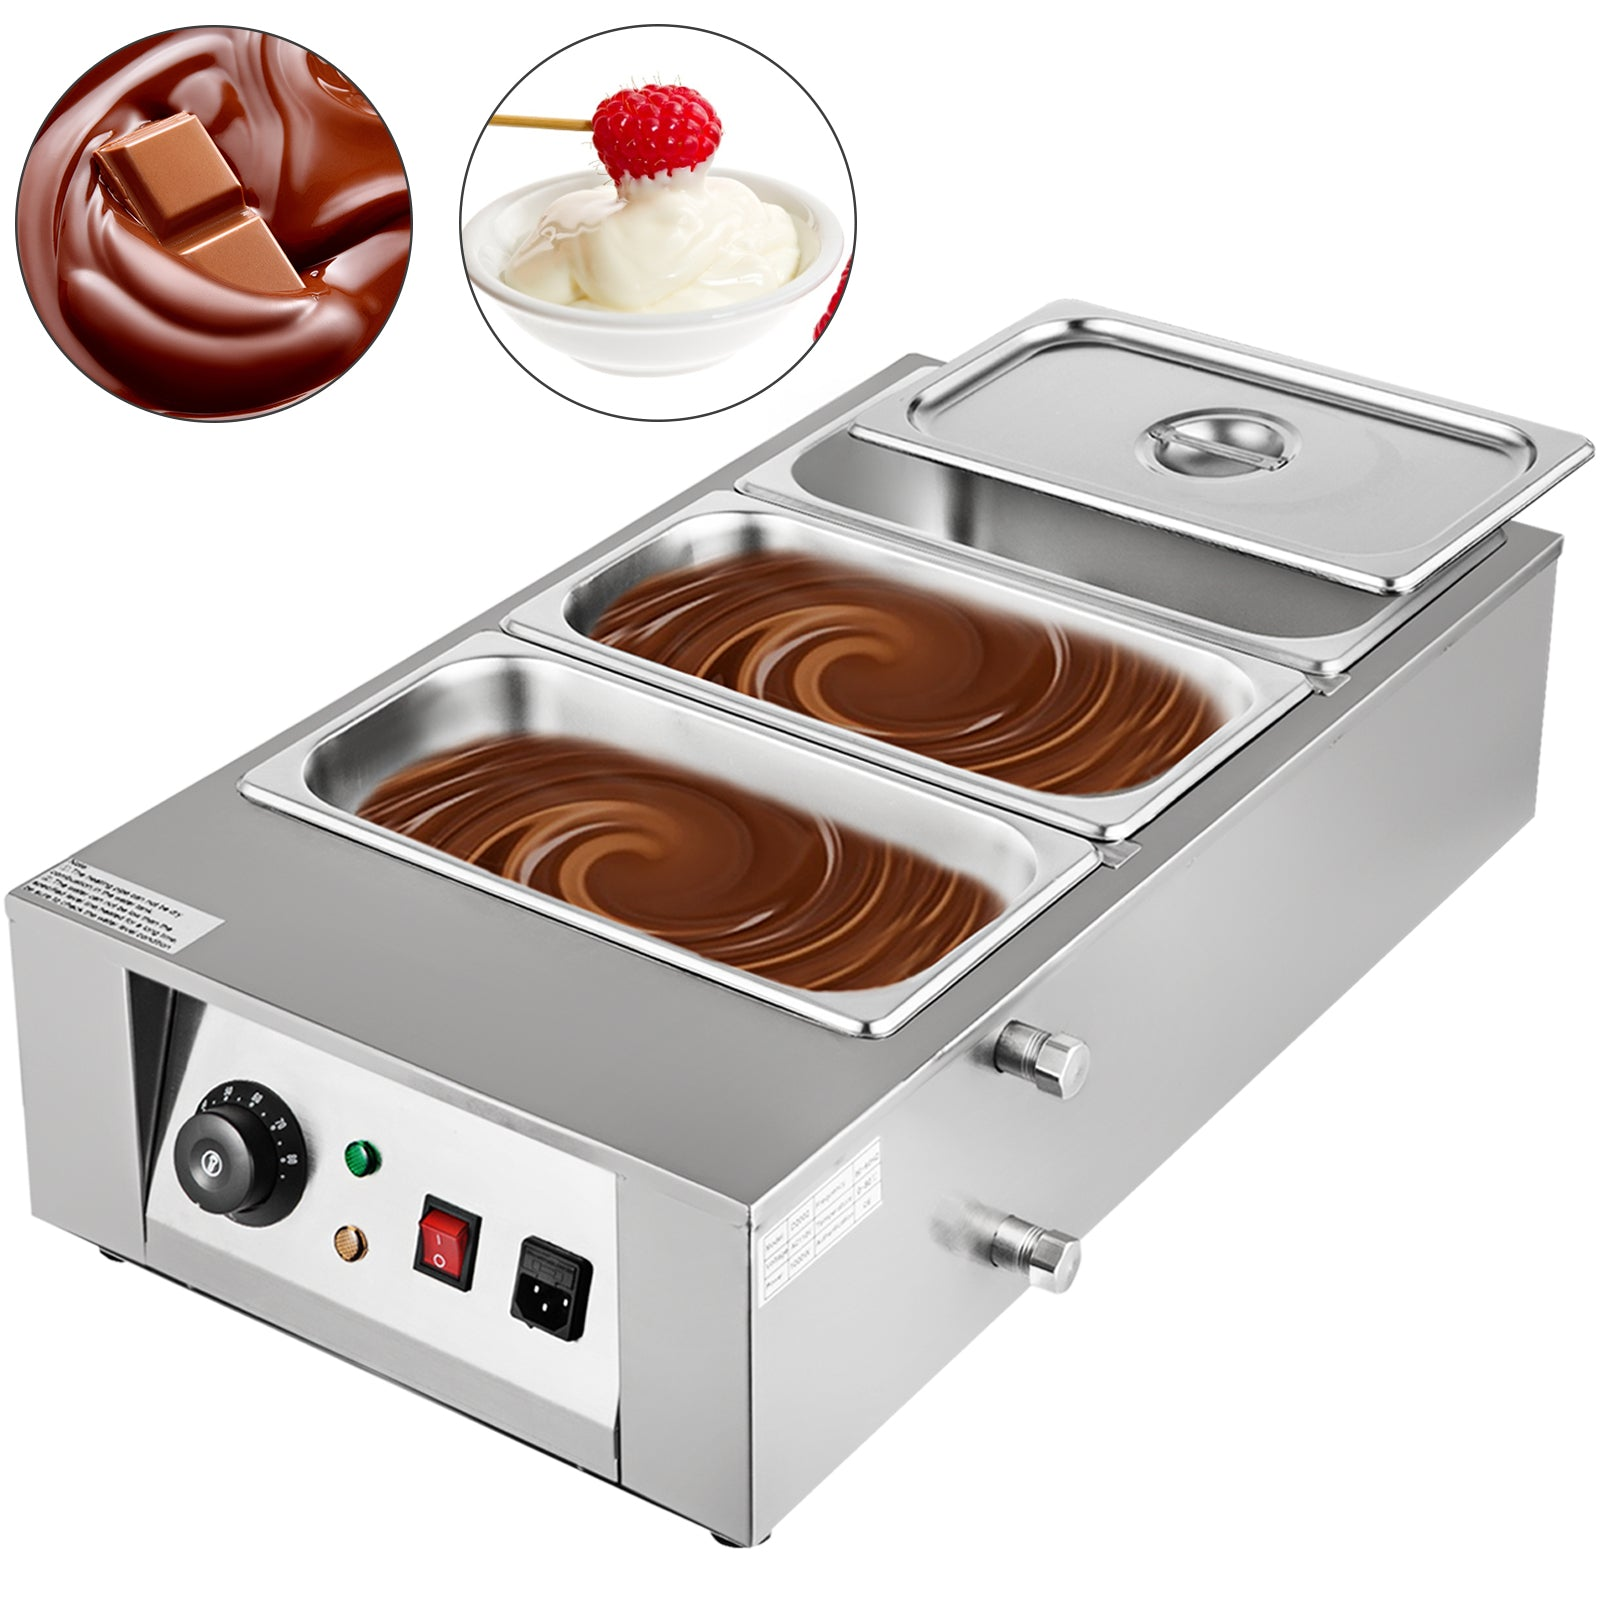 1kw Electric Chocolate Melting Pot Machine 3 Tanks 26.45lbs Capacity Commercial